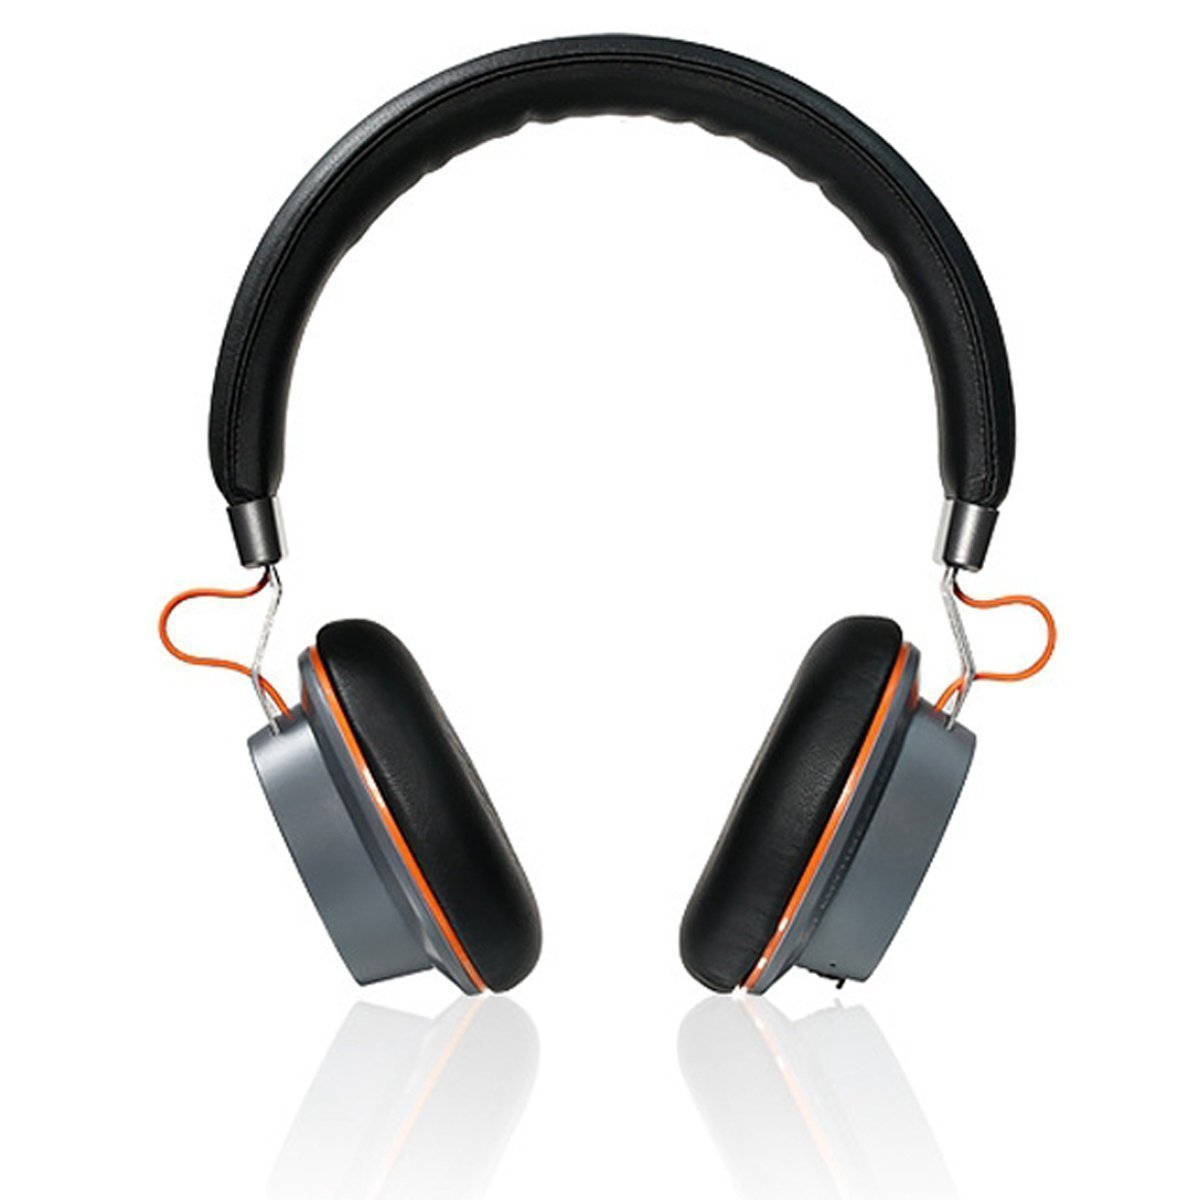 Amazon.com: Bluetooth Headphone, Remax 195HB Wireless Headphones Bluetooth 4.1 Stereo Headphones With Microphone Over-ear Music Headsets For Cellphones ...